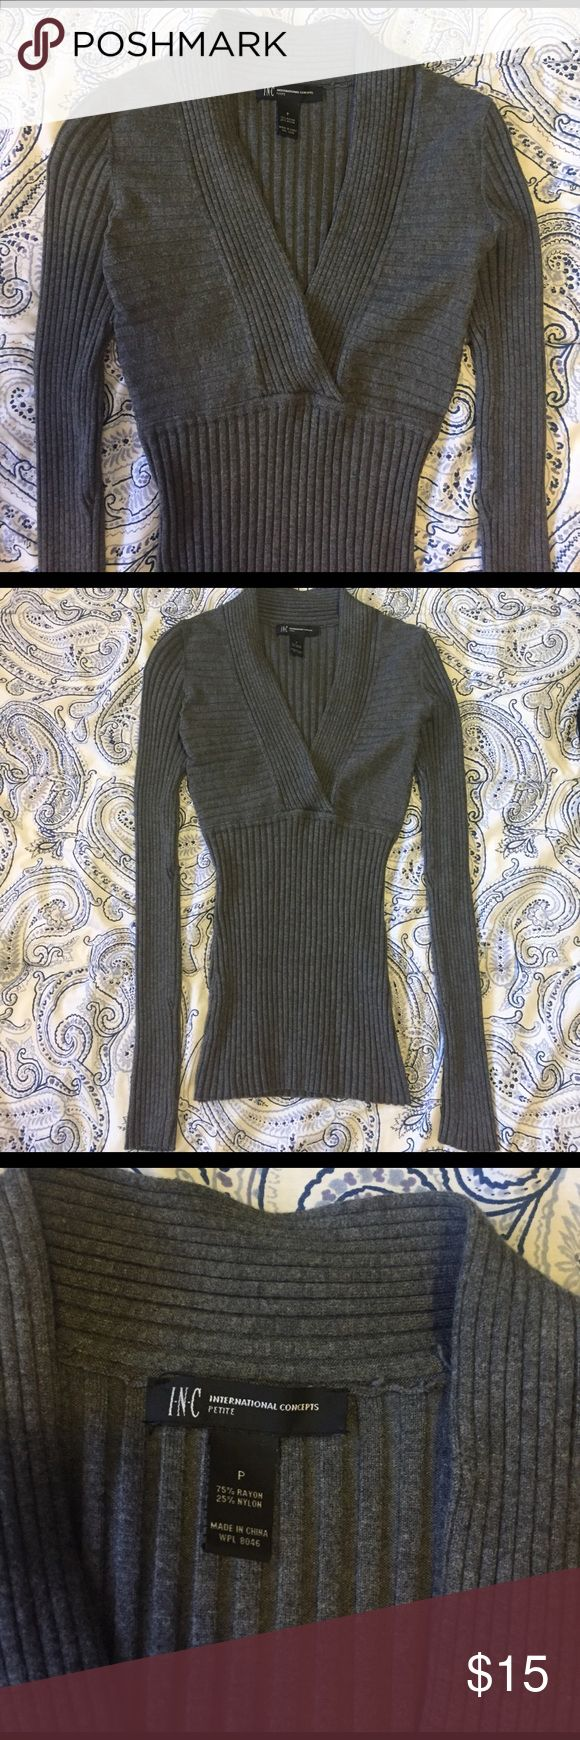 INC International Concepts gray petite sweater In very good condition. Fits like a petite small, and it does look very slim but it will stretch out when wearing. INC International Concepts Sweaters V-Necks